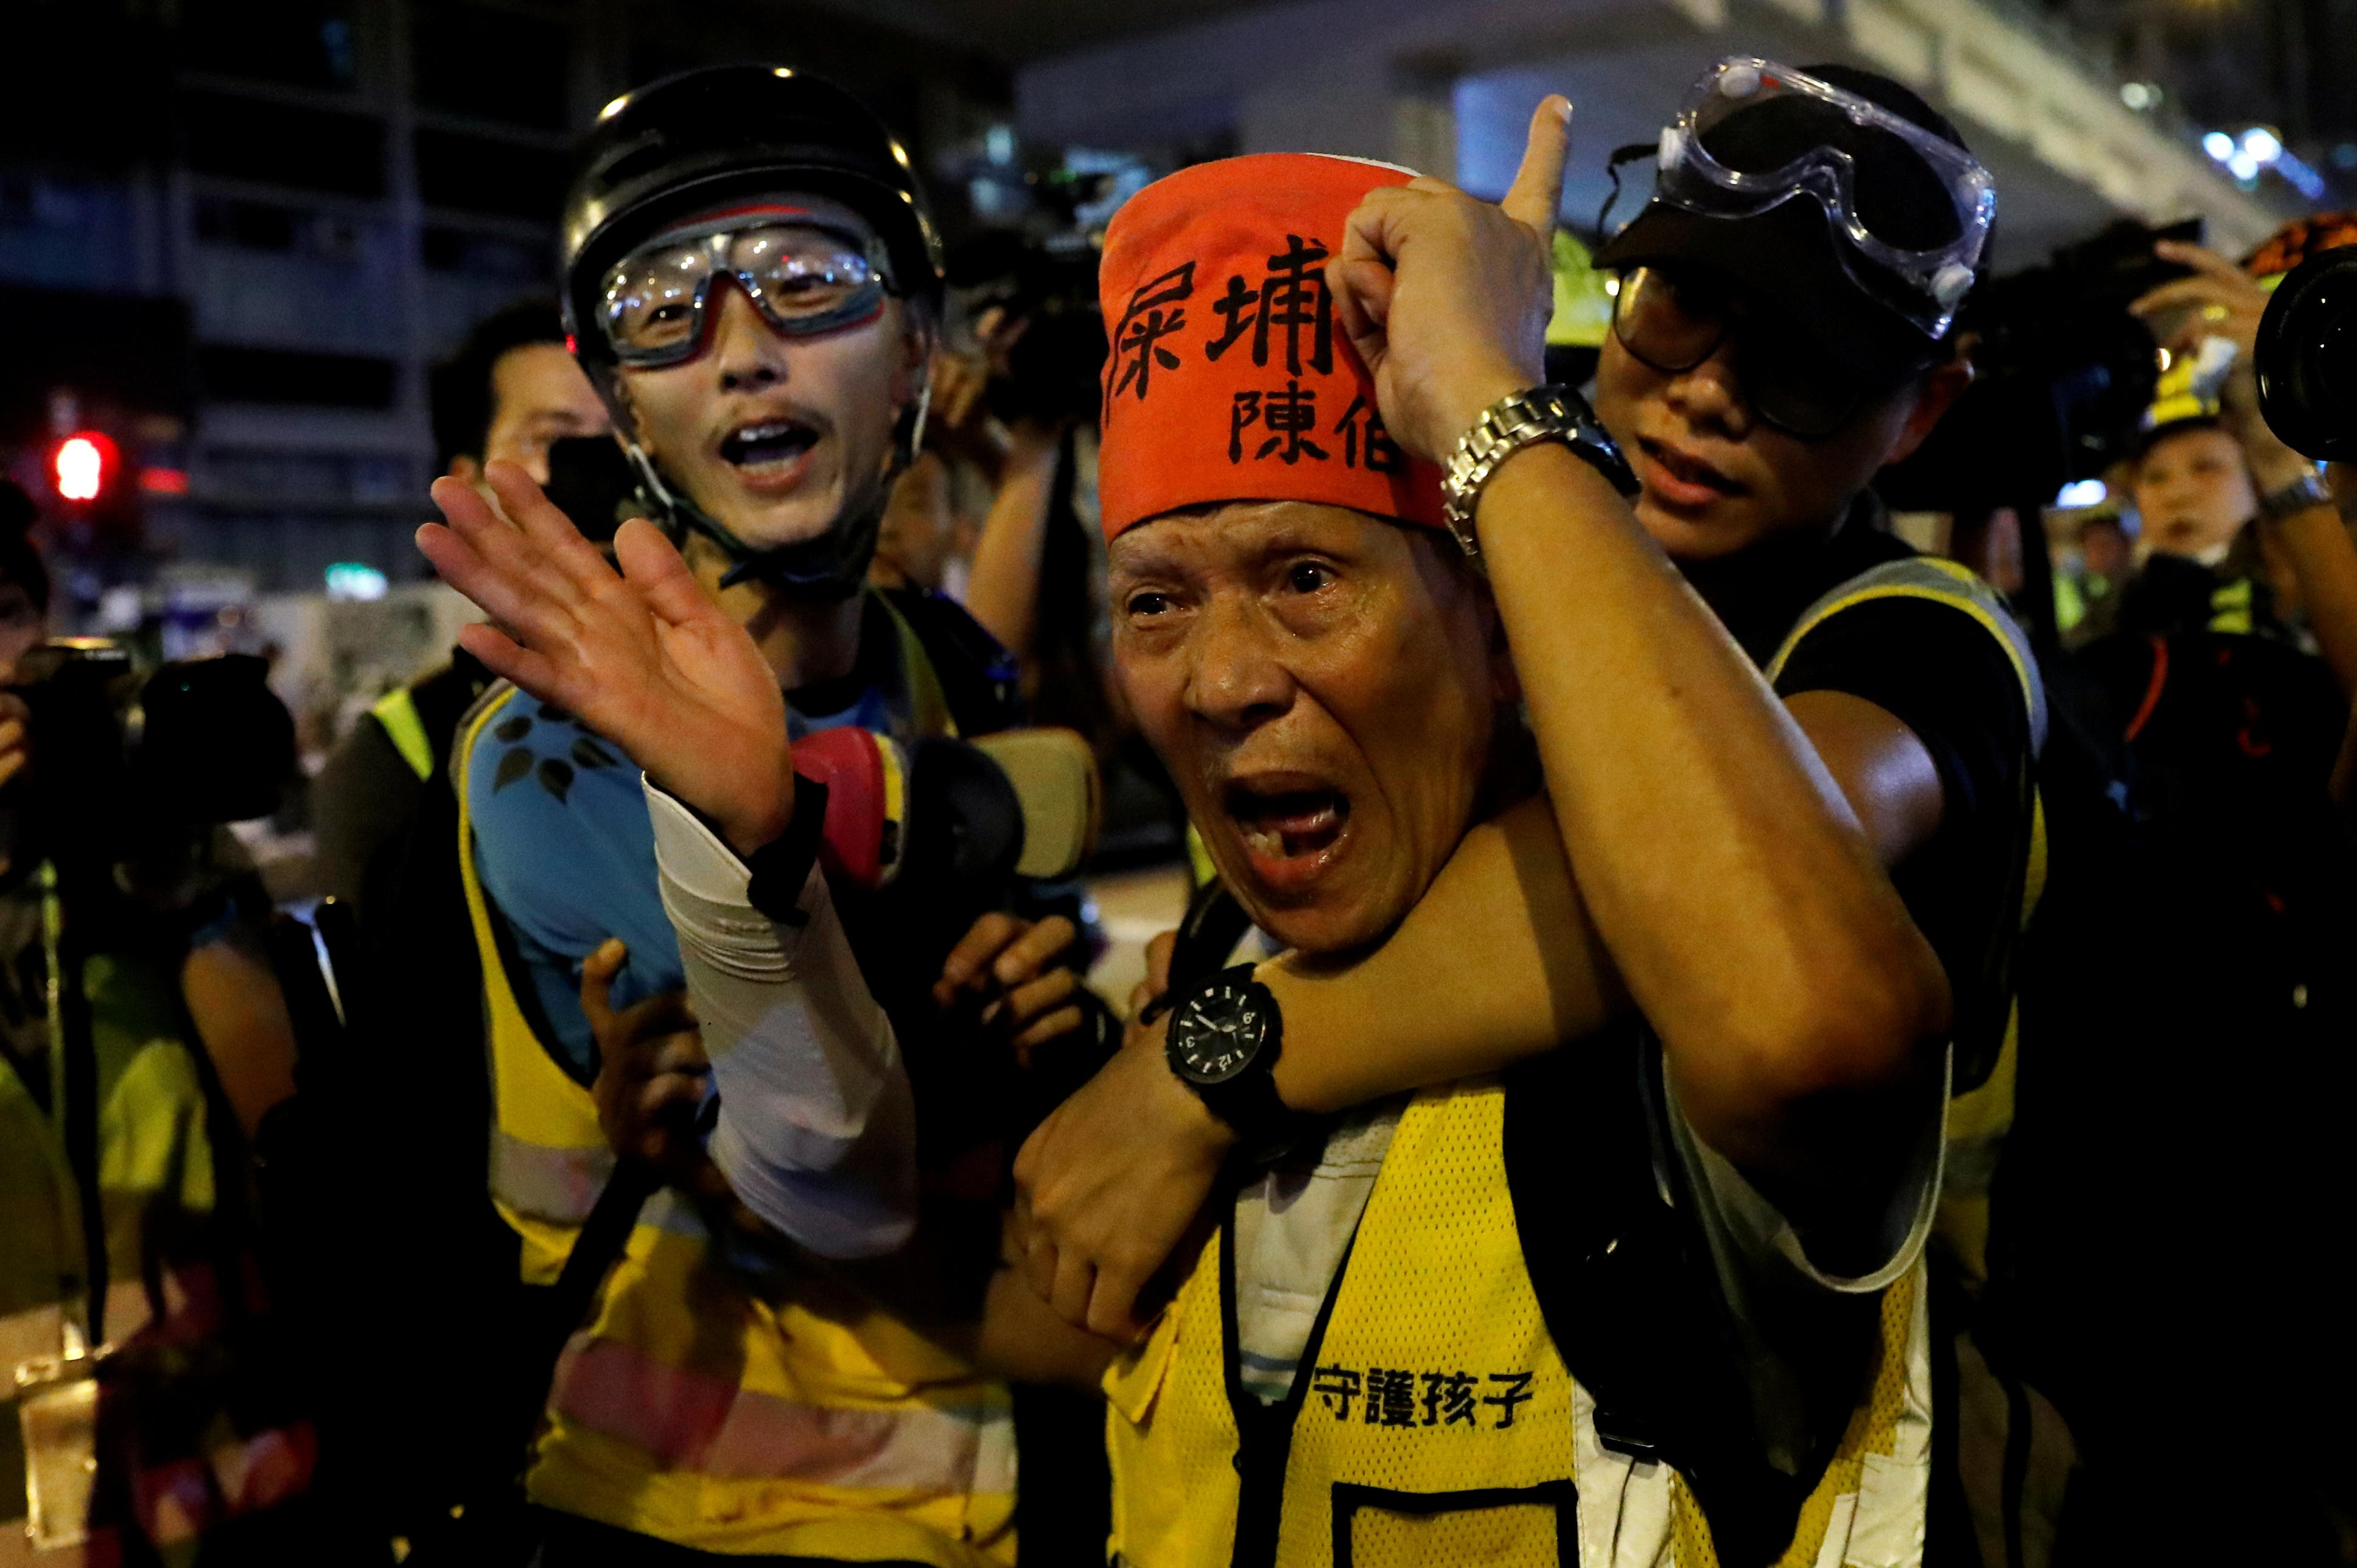 Hong Kong police fire tear gas after fending off airport protest